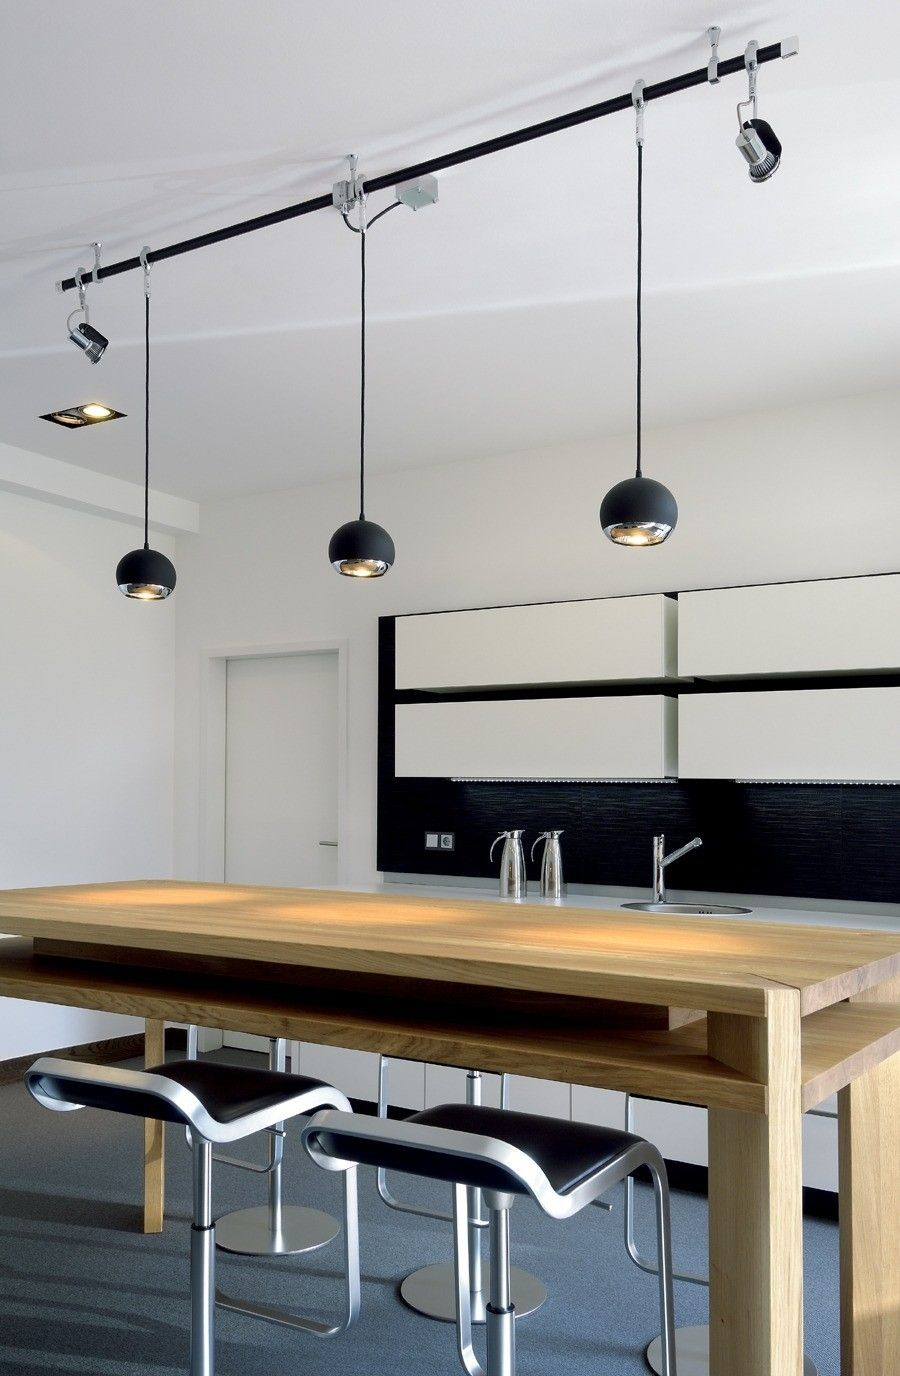 Pendant Track Lights Cool Track Lighting For A Kitchen Lighting Ideas In 2019